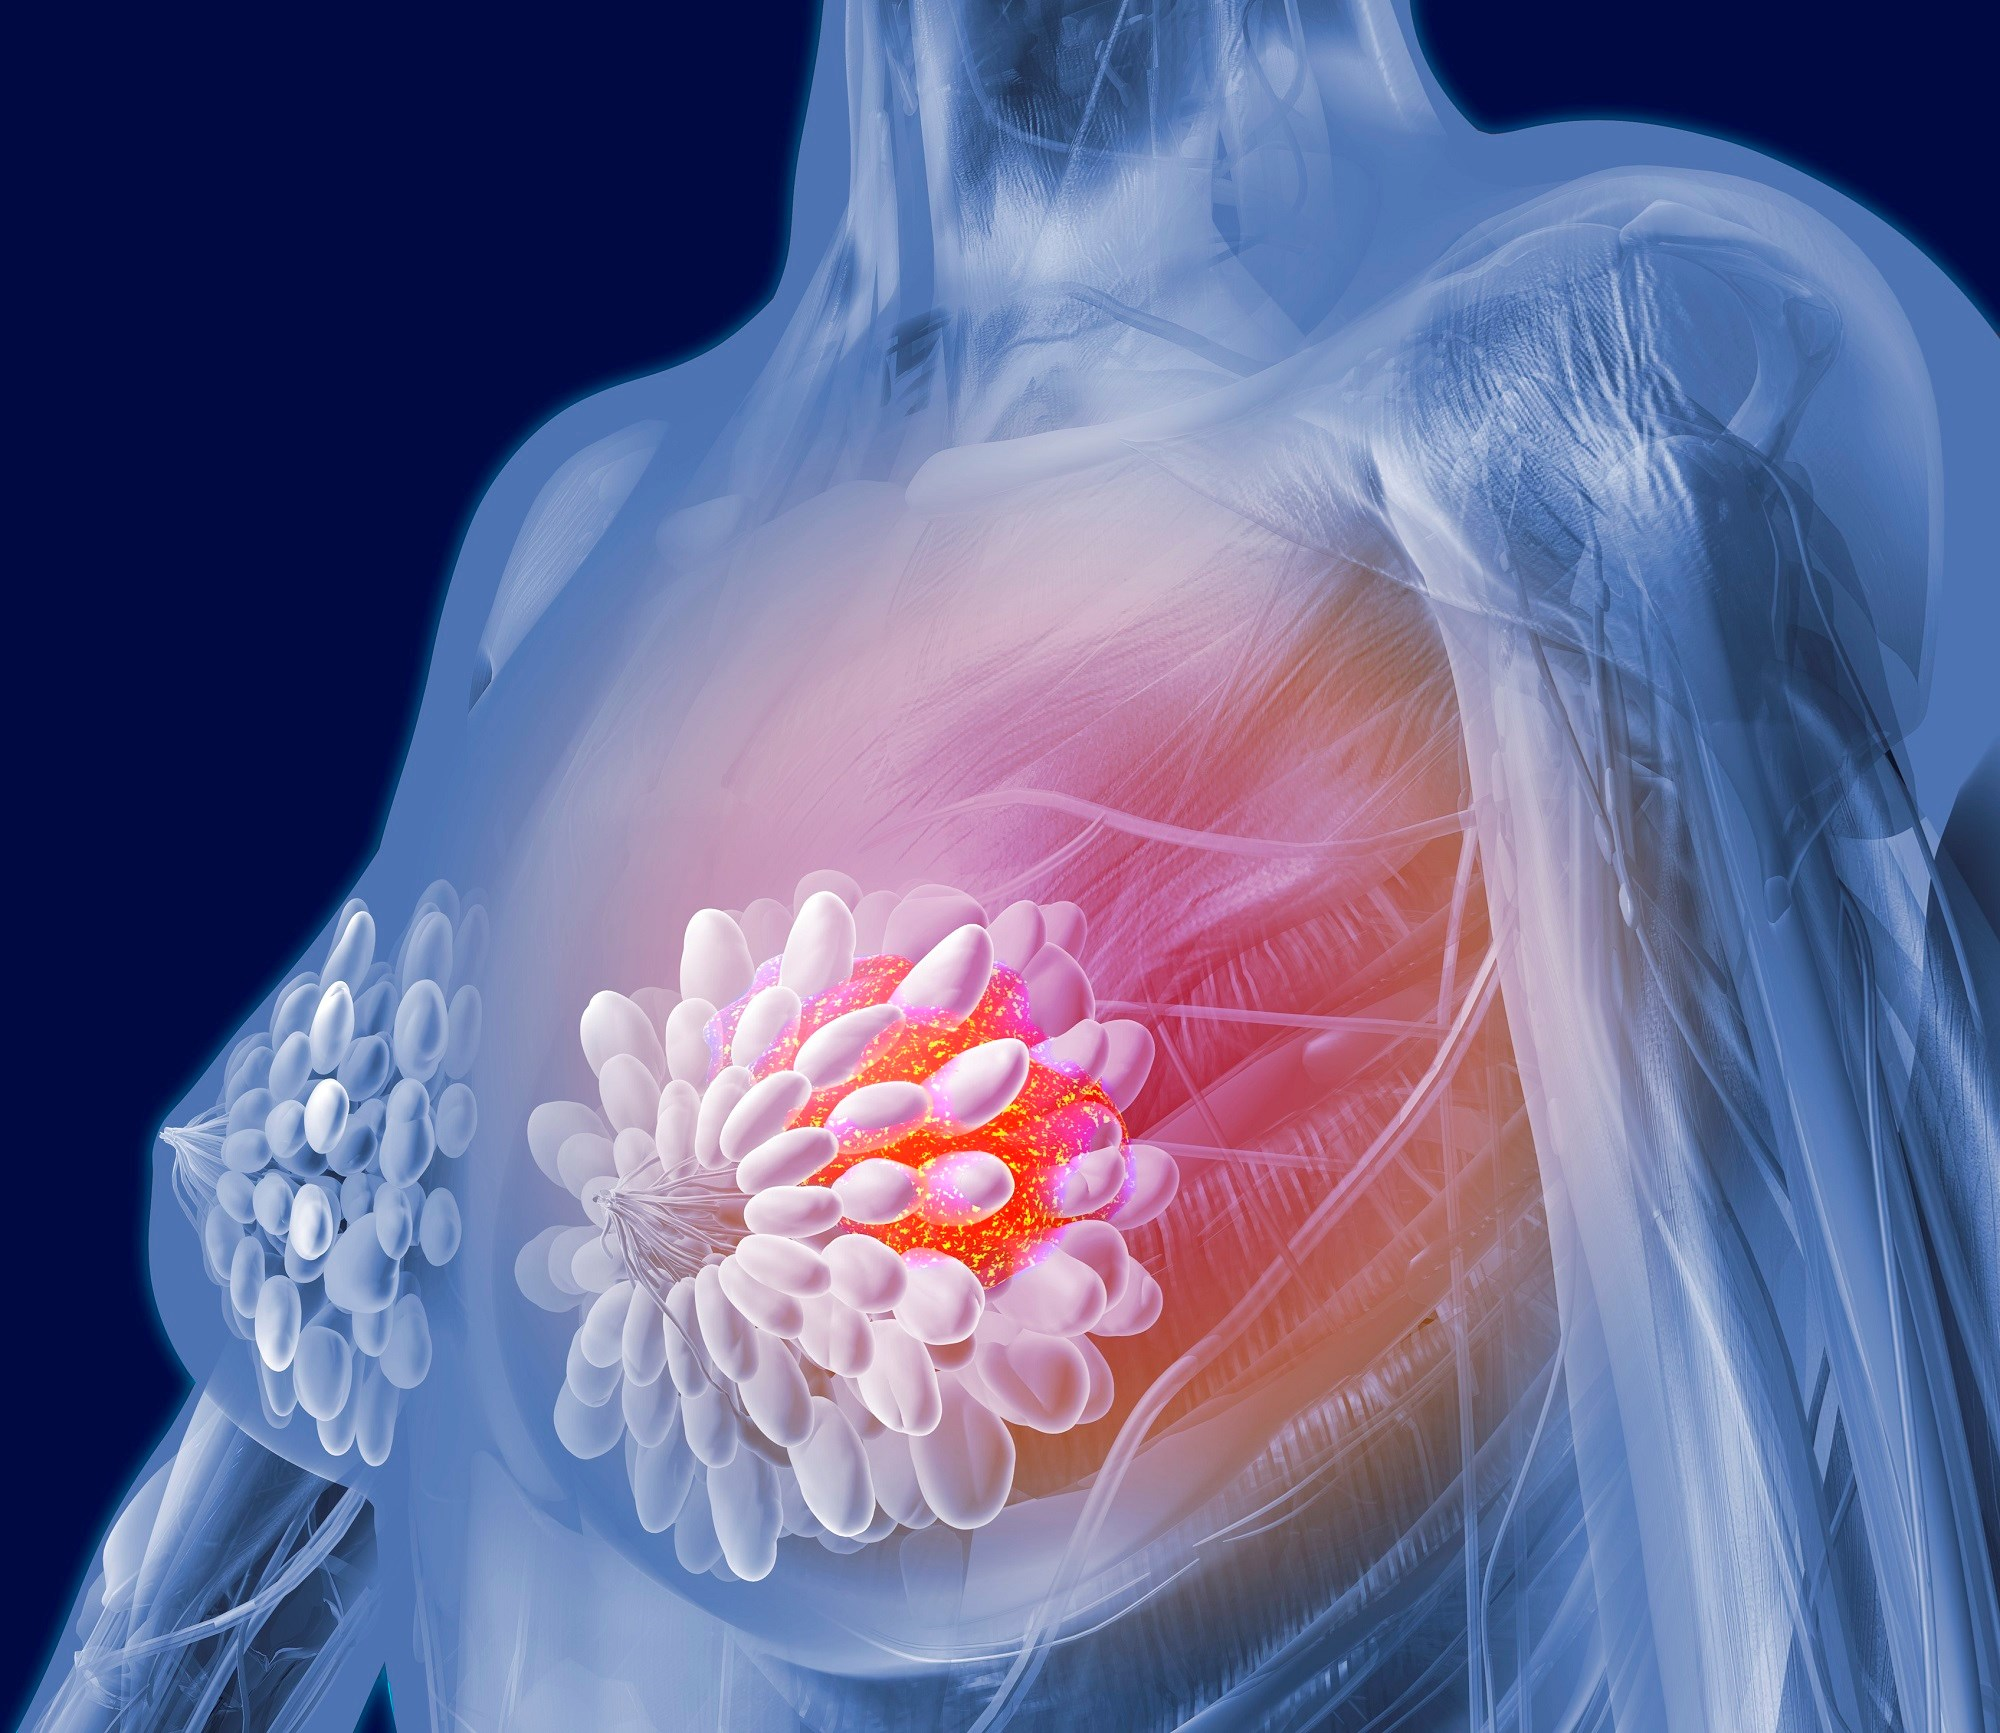 Ribociclib Prolongs Progression-Free Survival in Premenopausal Breast Cancer